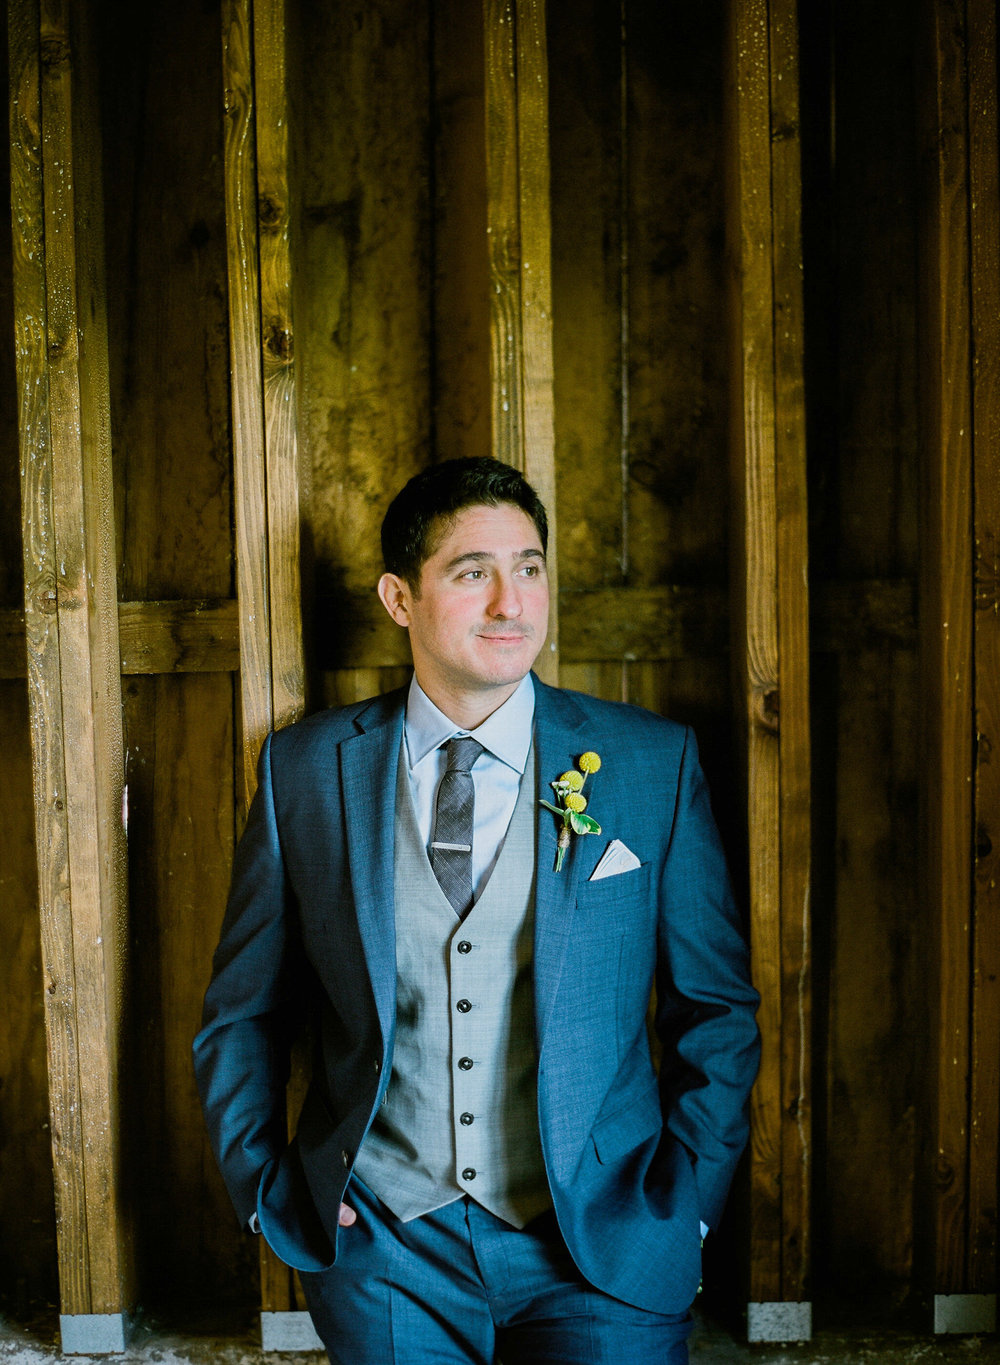 Northern MN Barn wedding at Bloom Lake Barn in Shafer, MN